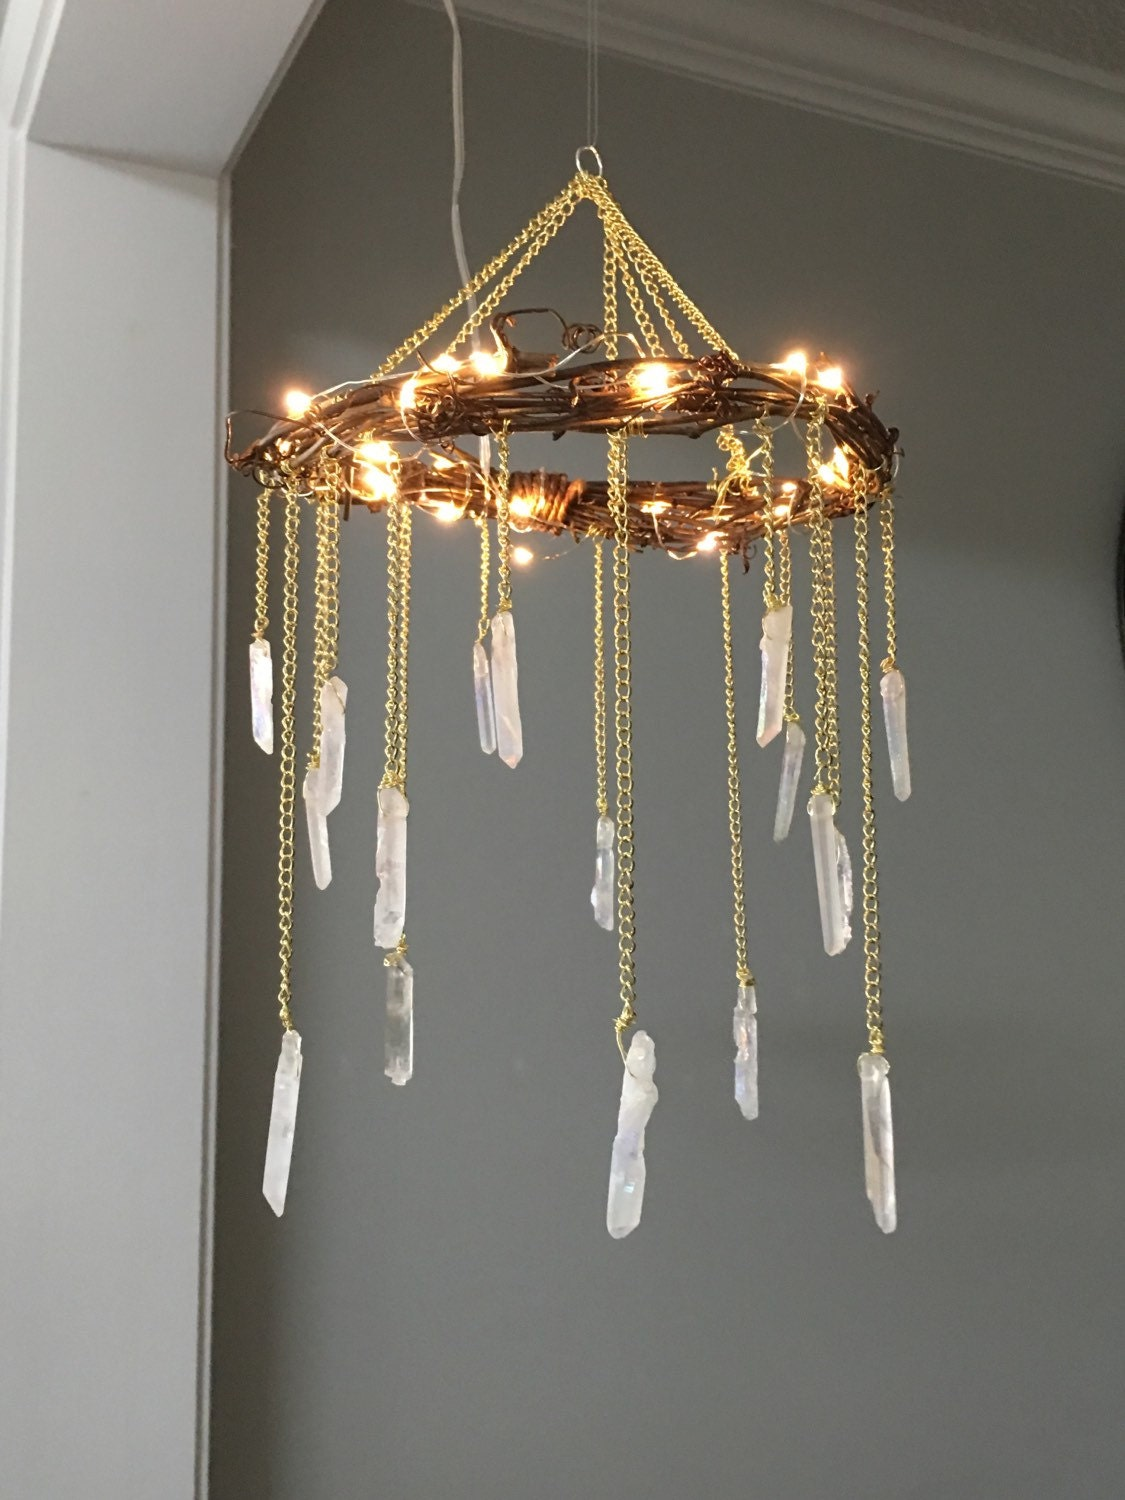 Bohemian Home Decor springtime bohemian home decor pastel bohemian springtime boho home decorations bohemian easter Crystal Mobile Crystal Point Bohemian Mobile Quartz Point Crystal Chandelier Rustic Lighted Chandelier